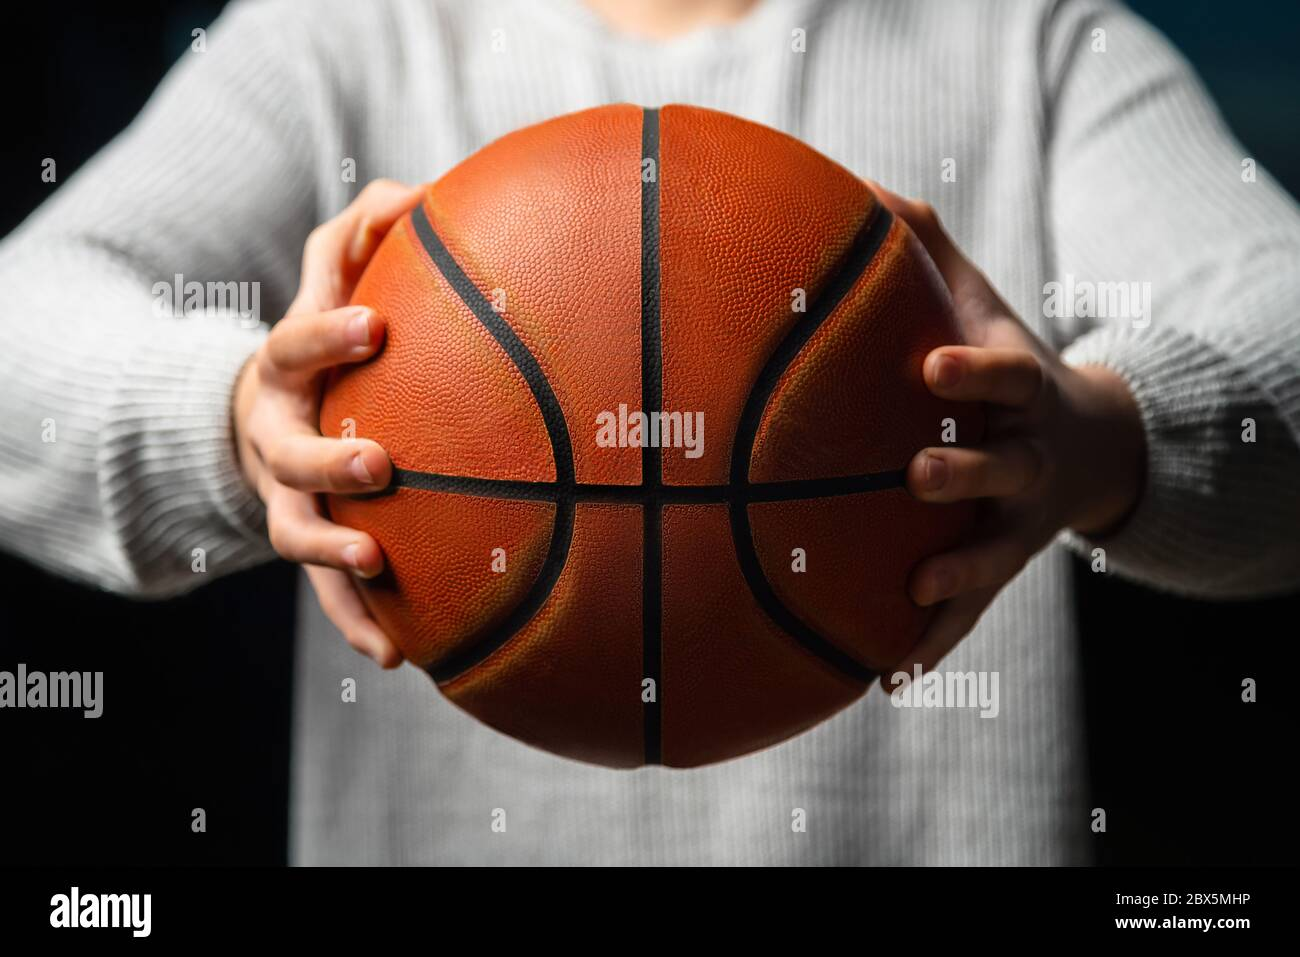 Close up of professional basketball player holding a ball in the hand. Street basketball athlete preparing for competition. Concept of success, scorin Stock Photo